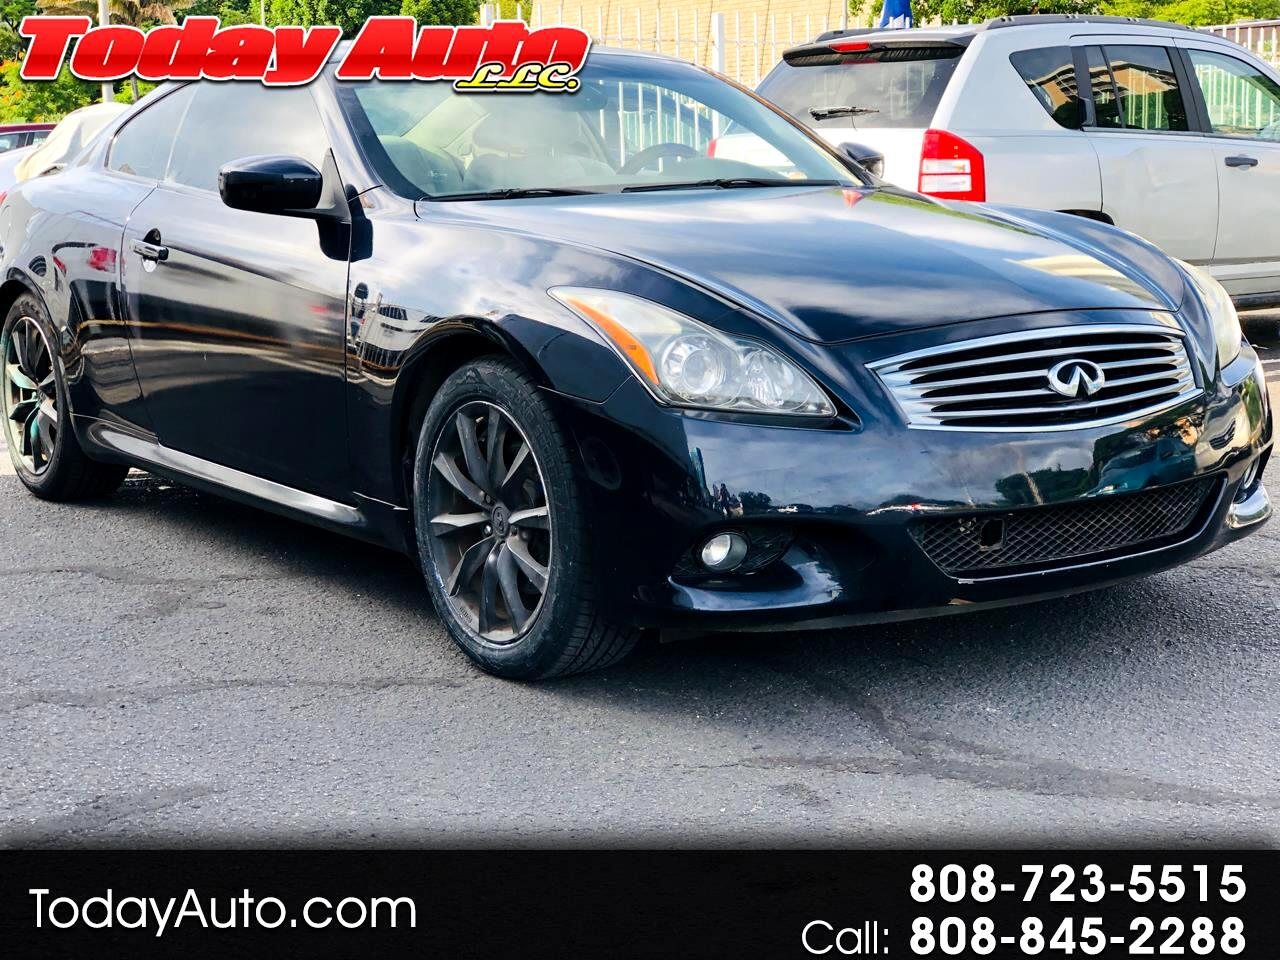 Infiniti G37 Coupe 2dr Journey RWD 2012